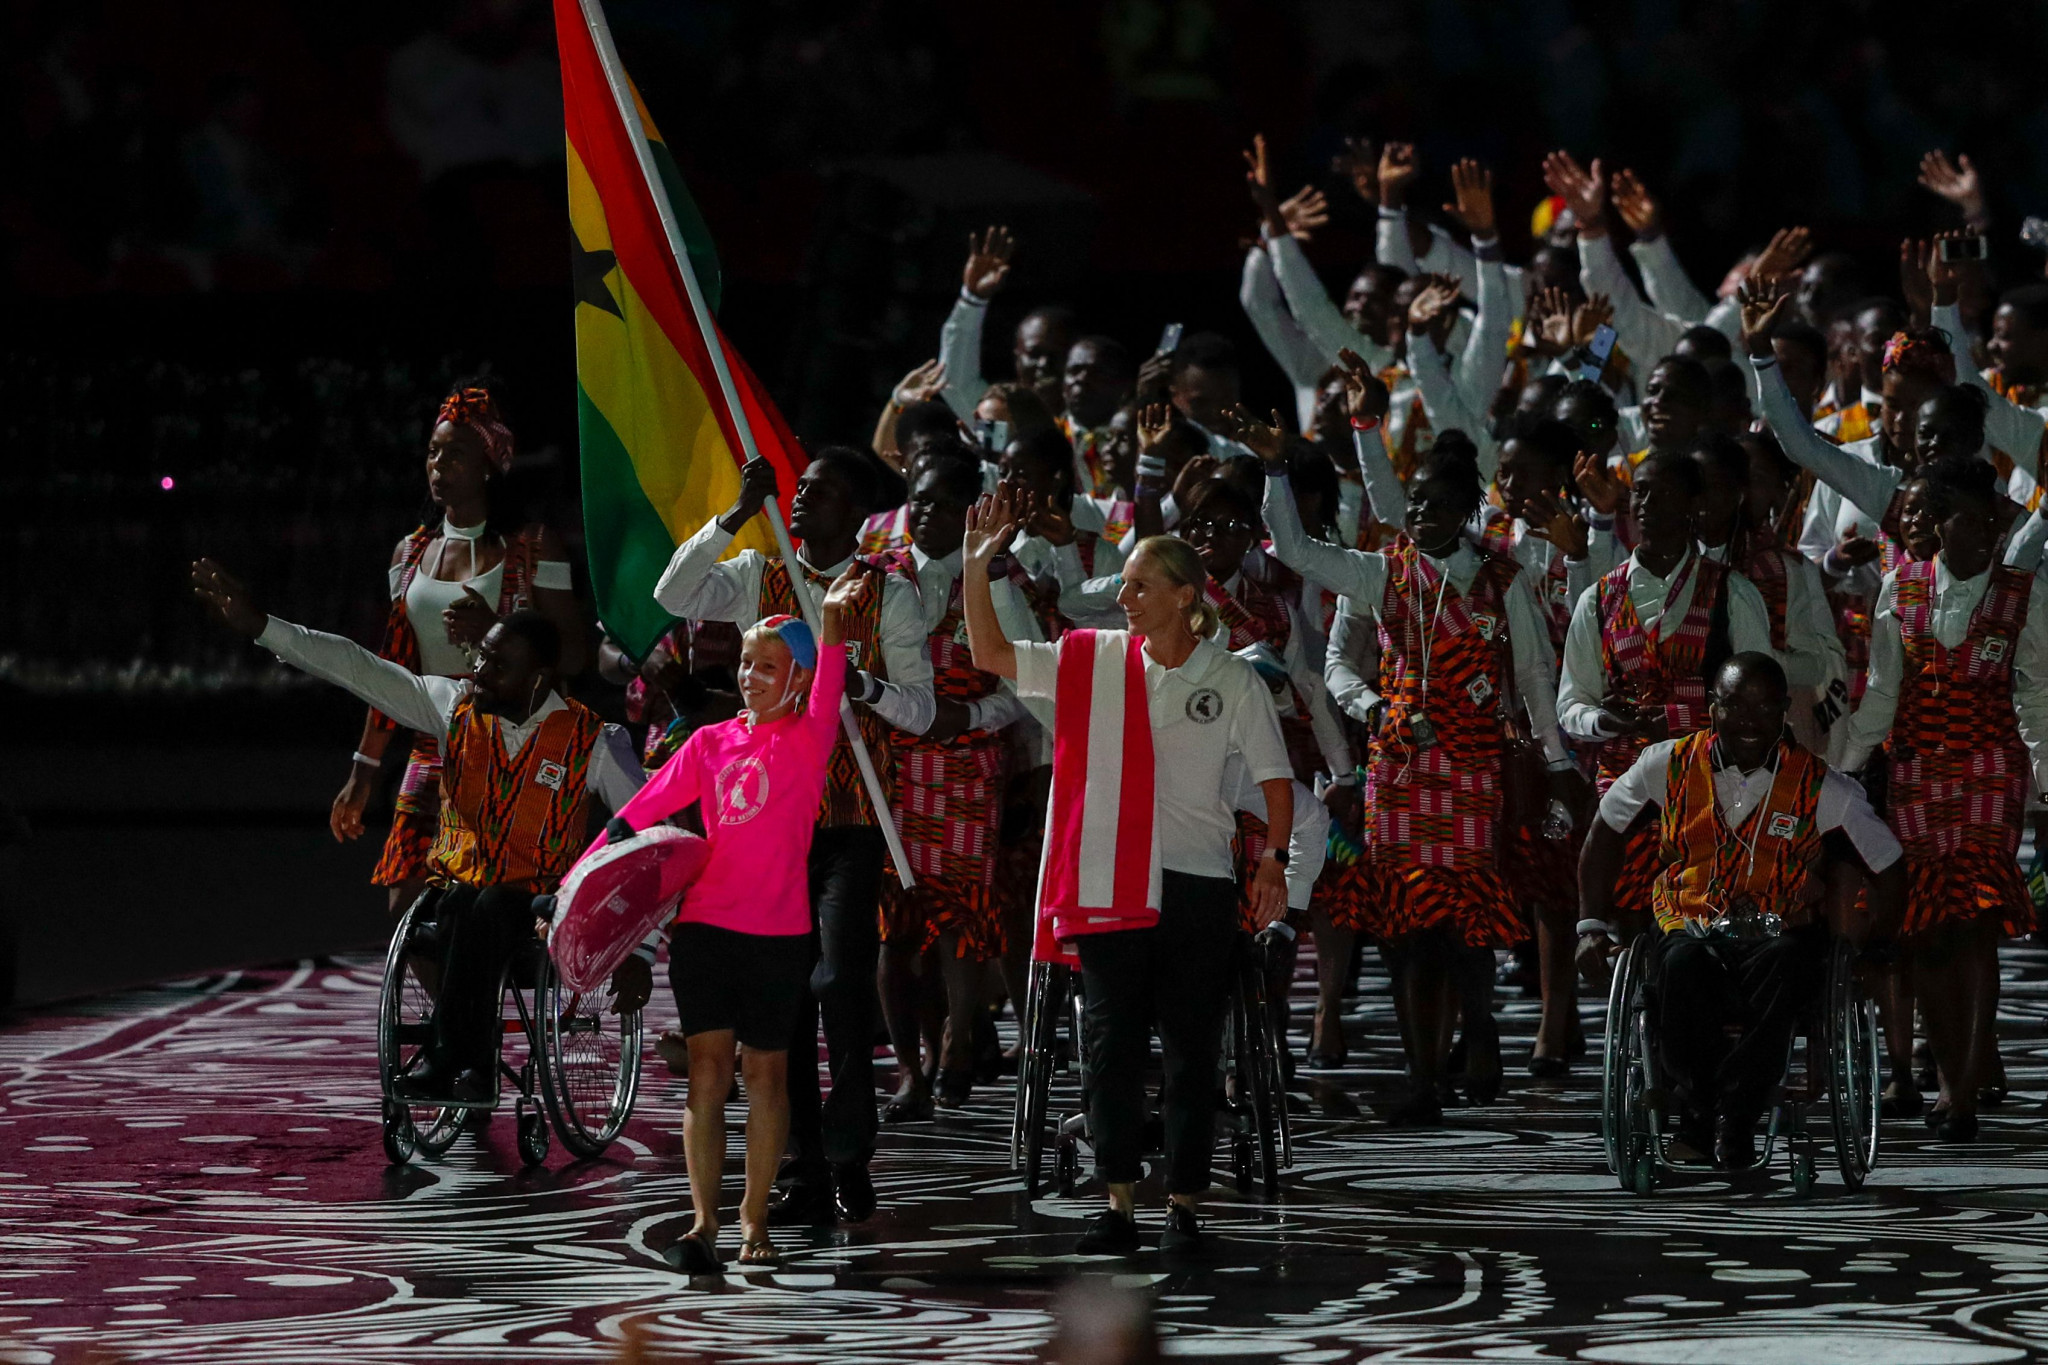 Ghana Olympic Committee to discuss report on Gold Coast 2018 conduct after visa allegations